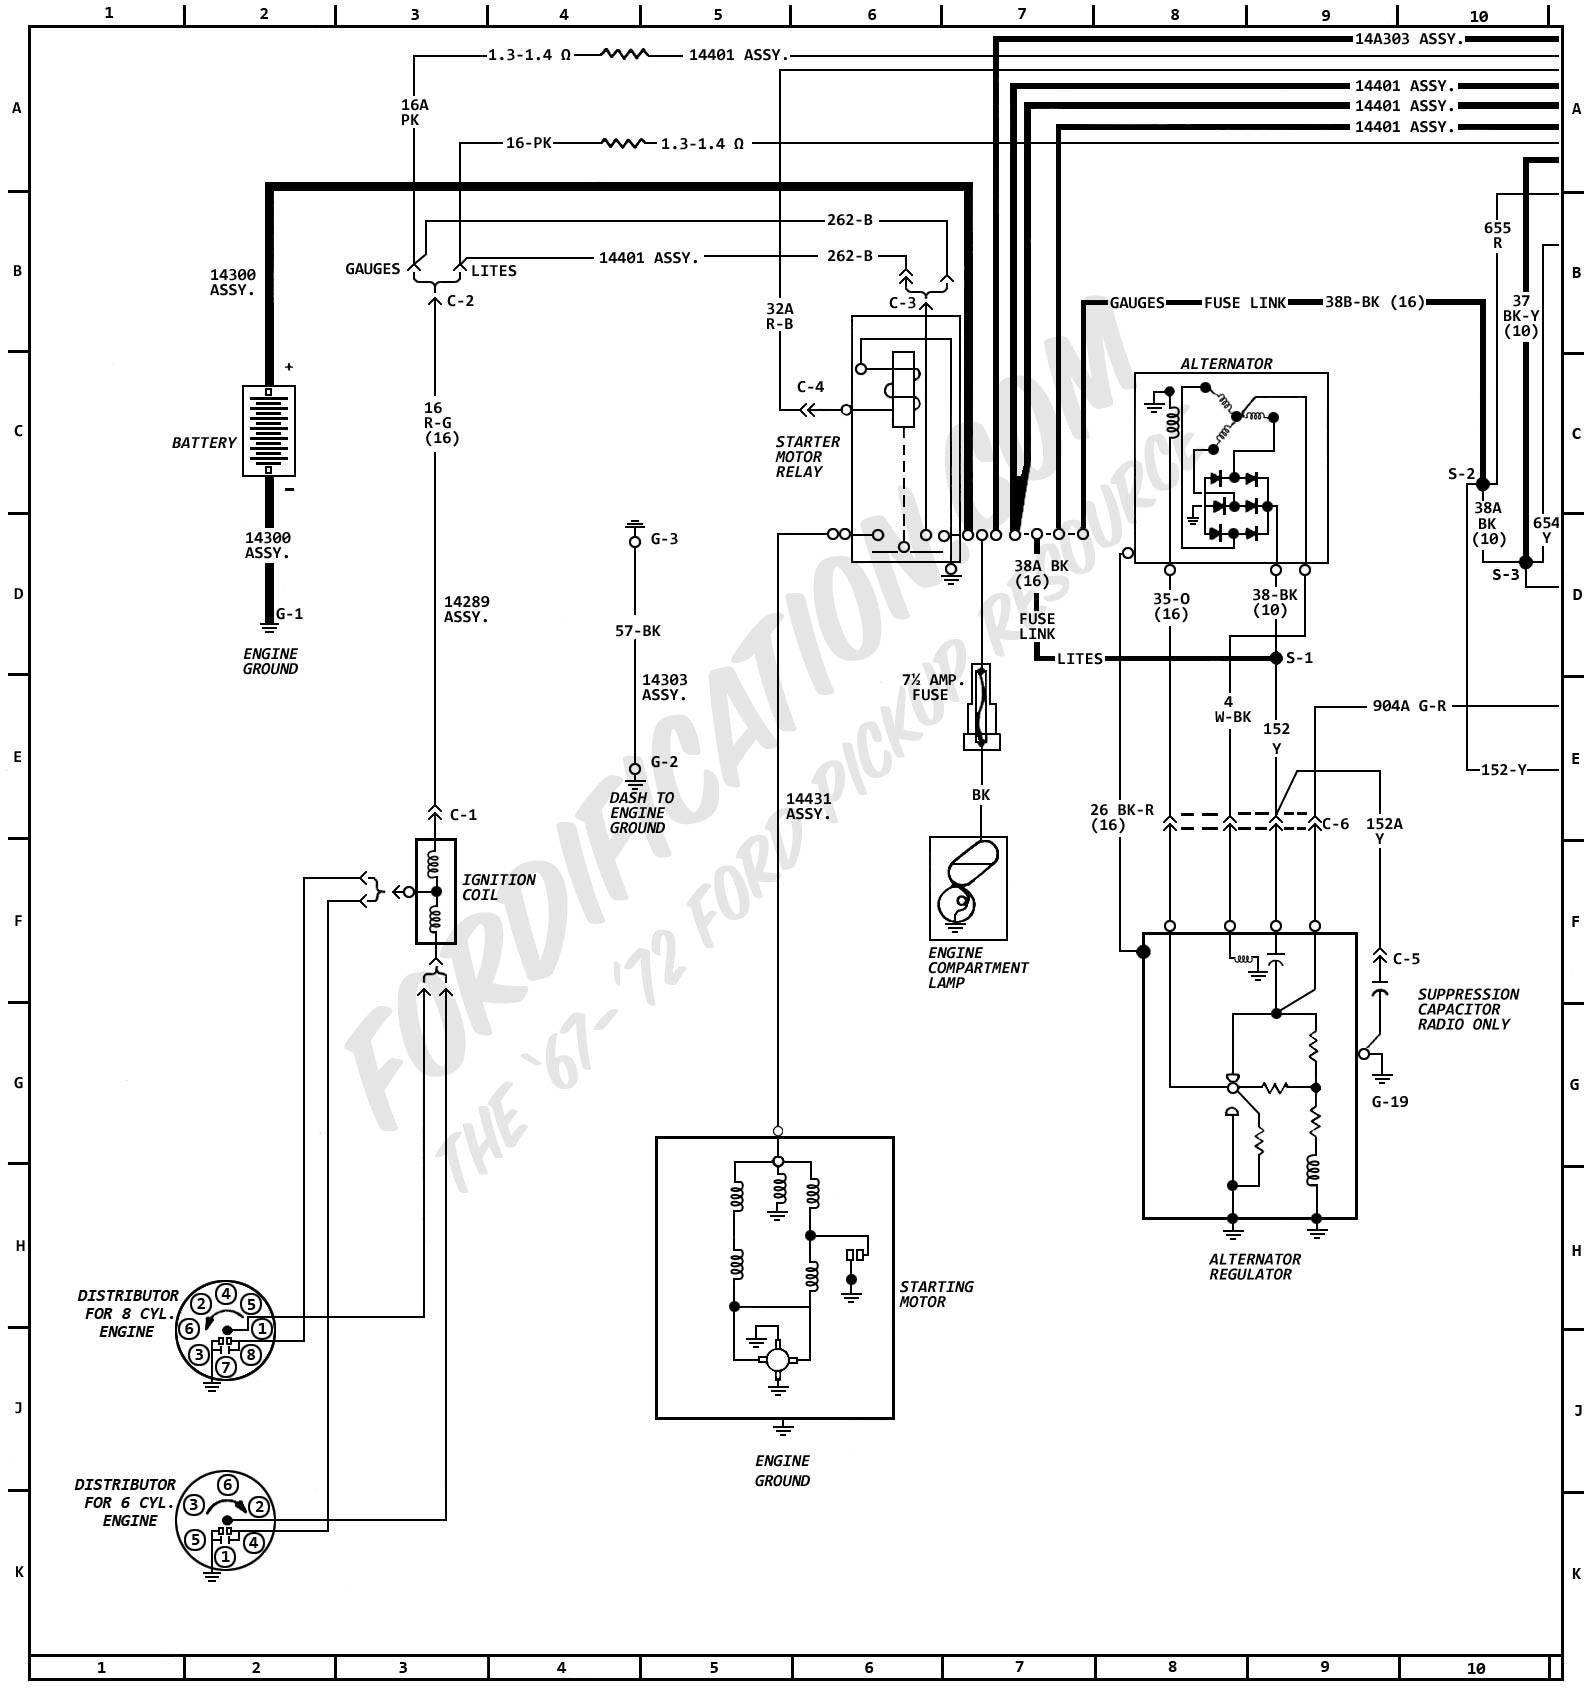 1963 Ford F100 Wiring Diagram Auto Electrical Wiring Diagram